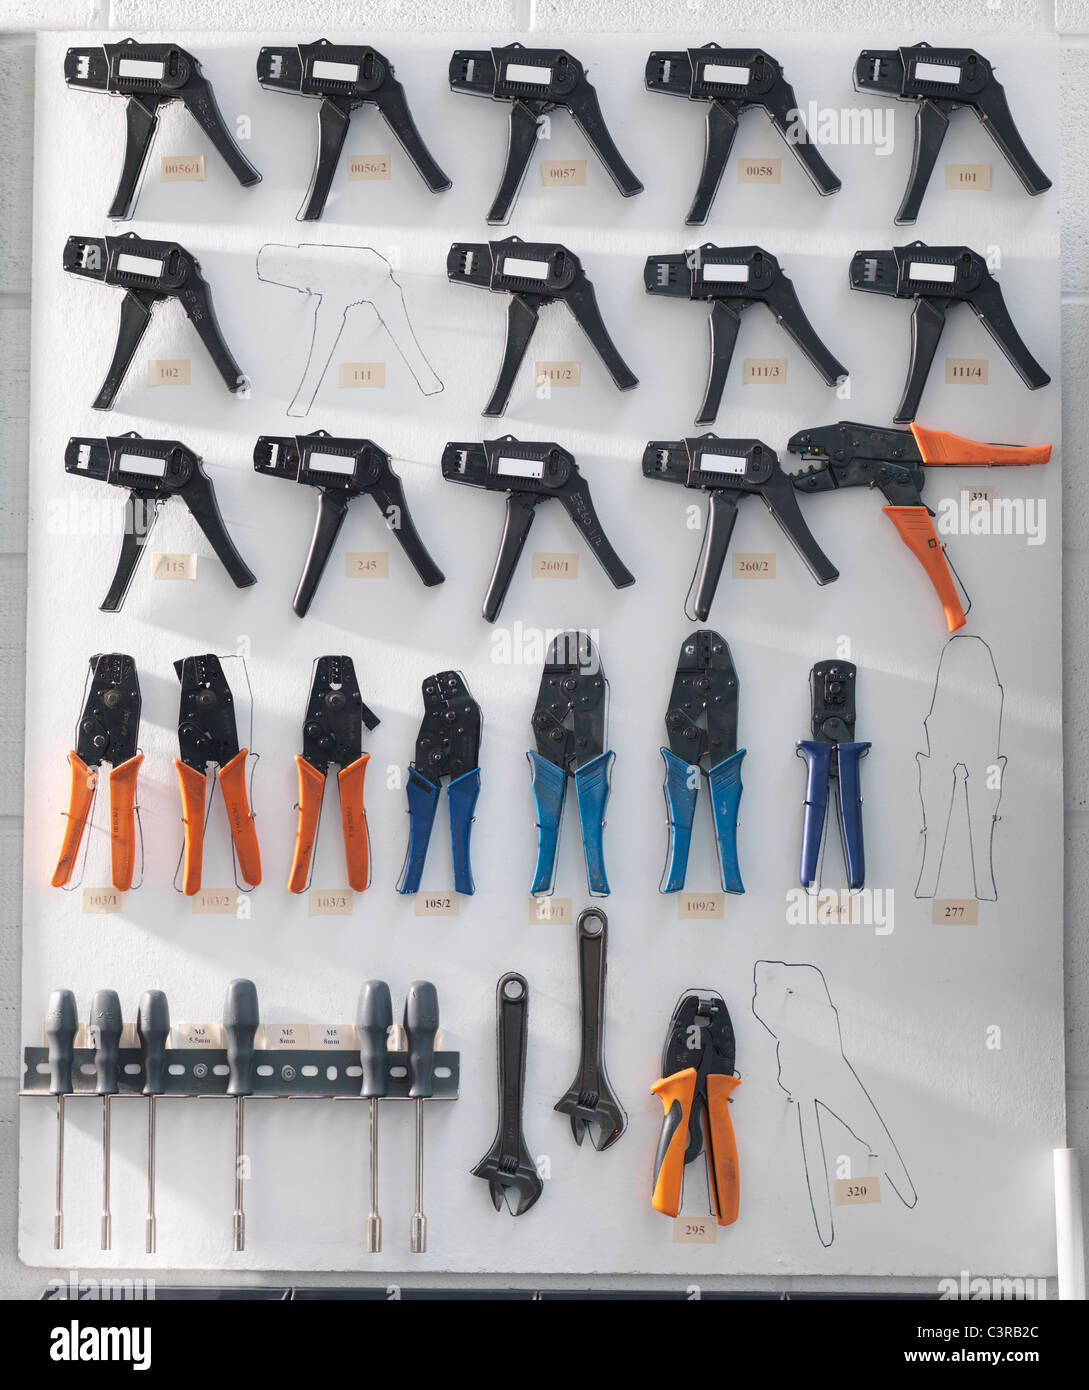 Tools arranged and organised - Stock Image